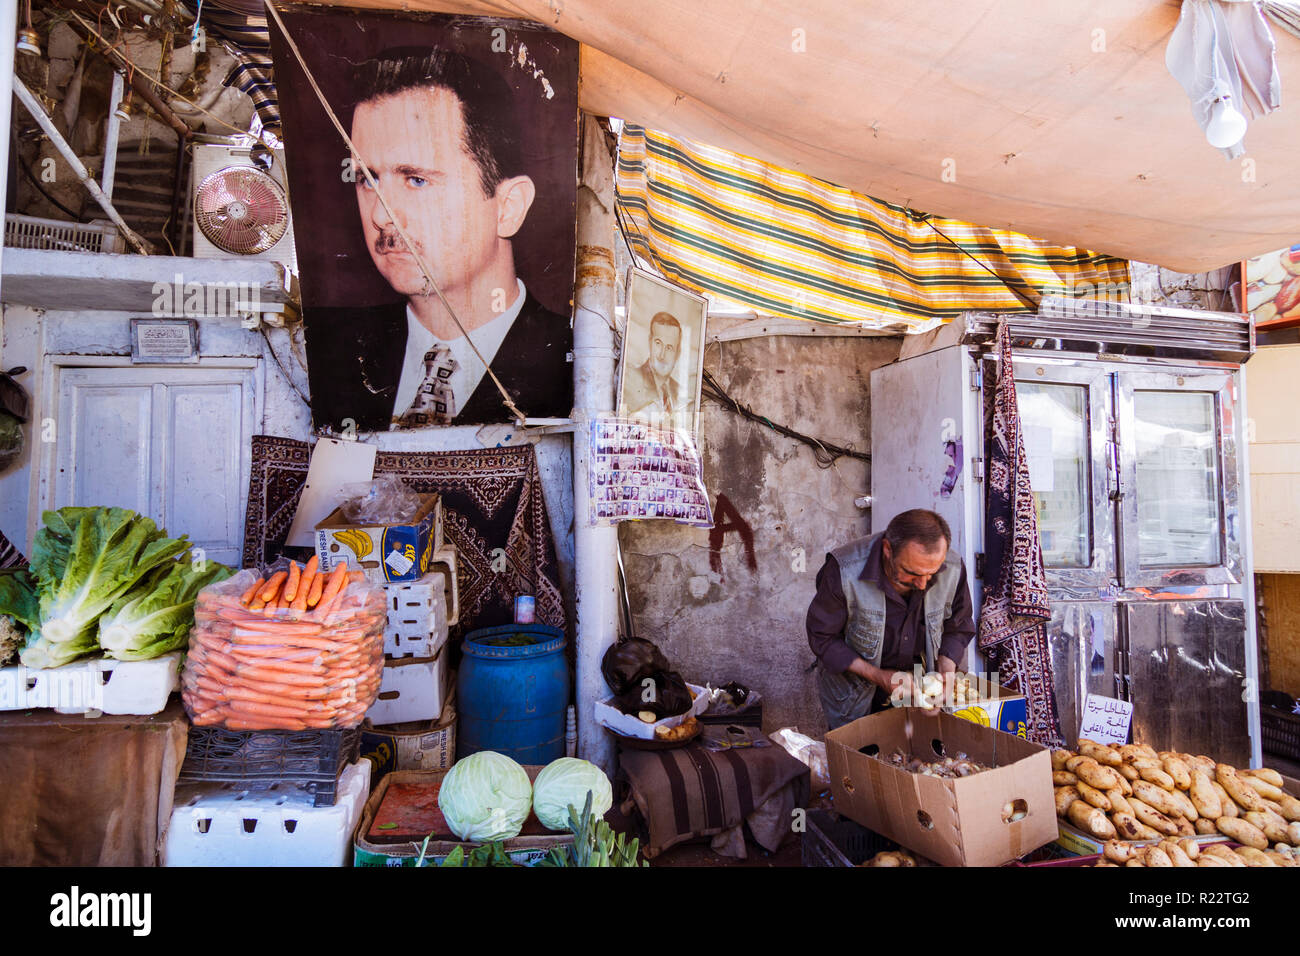 Damascus, Syria, May 29th 2009 : A vendor sells vegetables at a market stall dominated by a big portrait of the president of Syria, Bashar al-Assad. - Stock Image